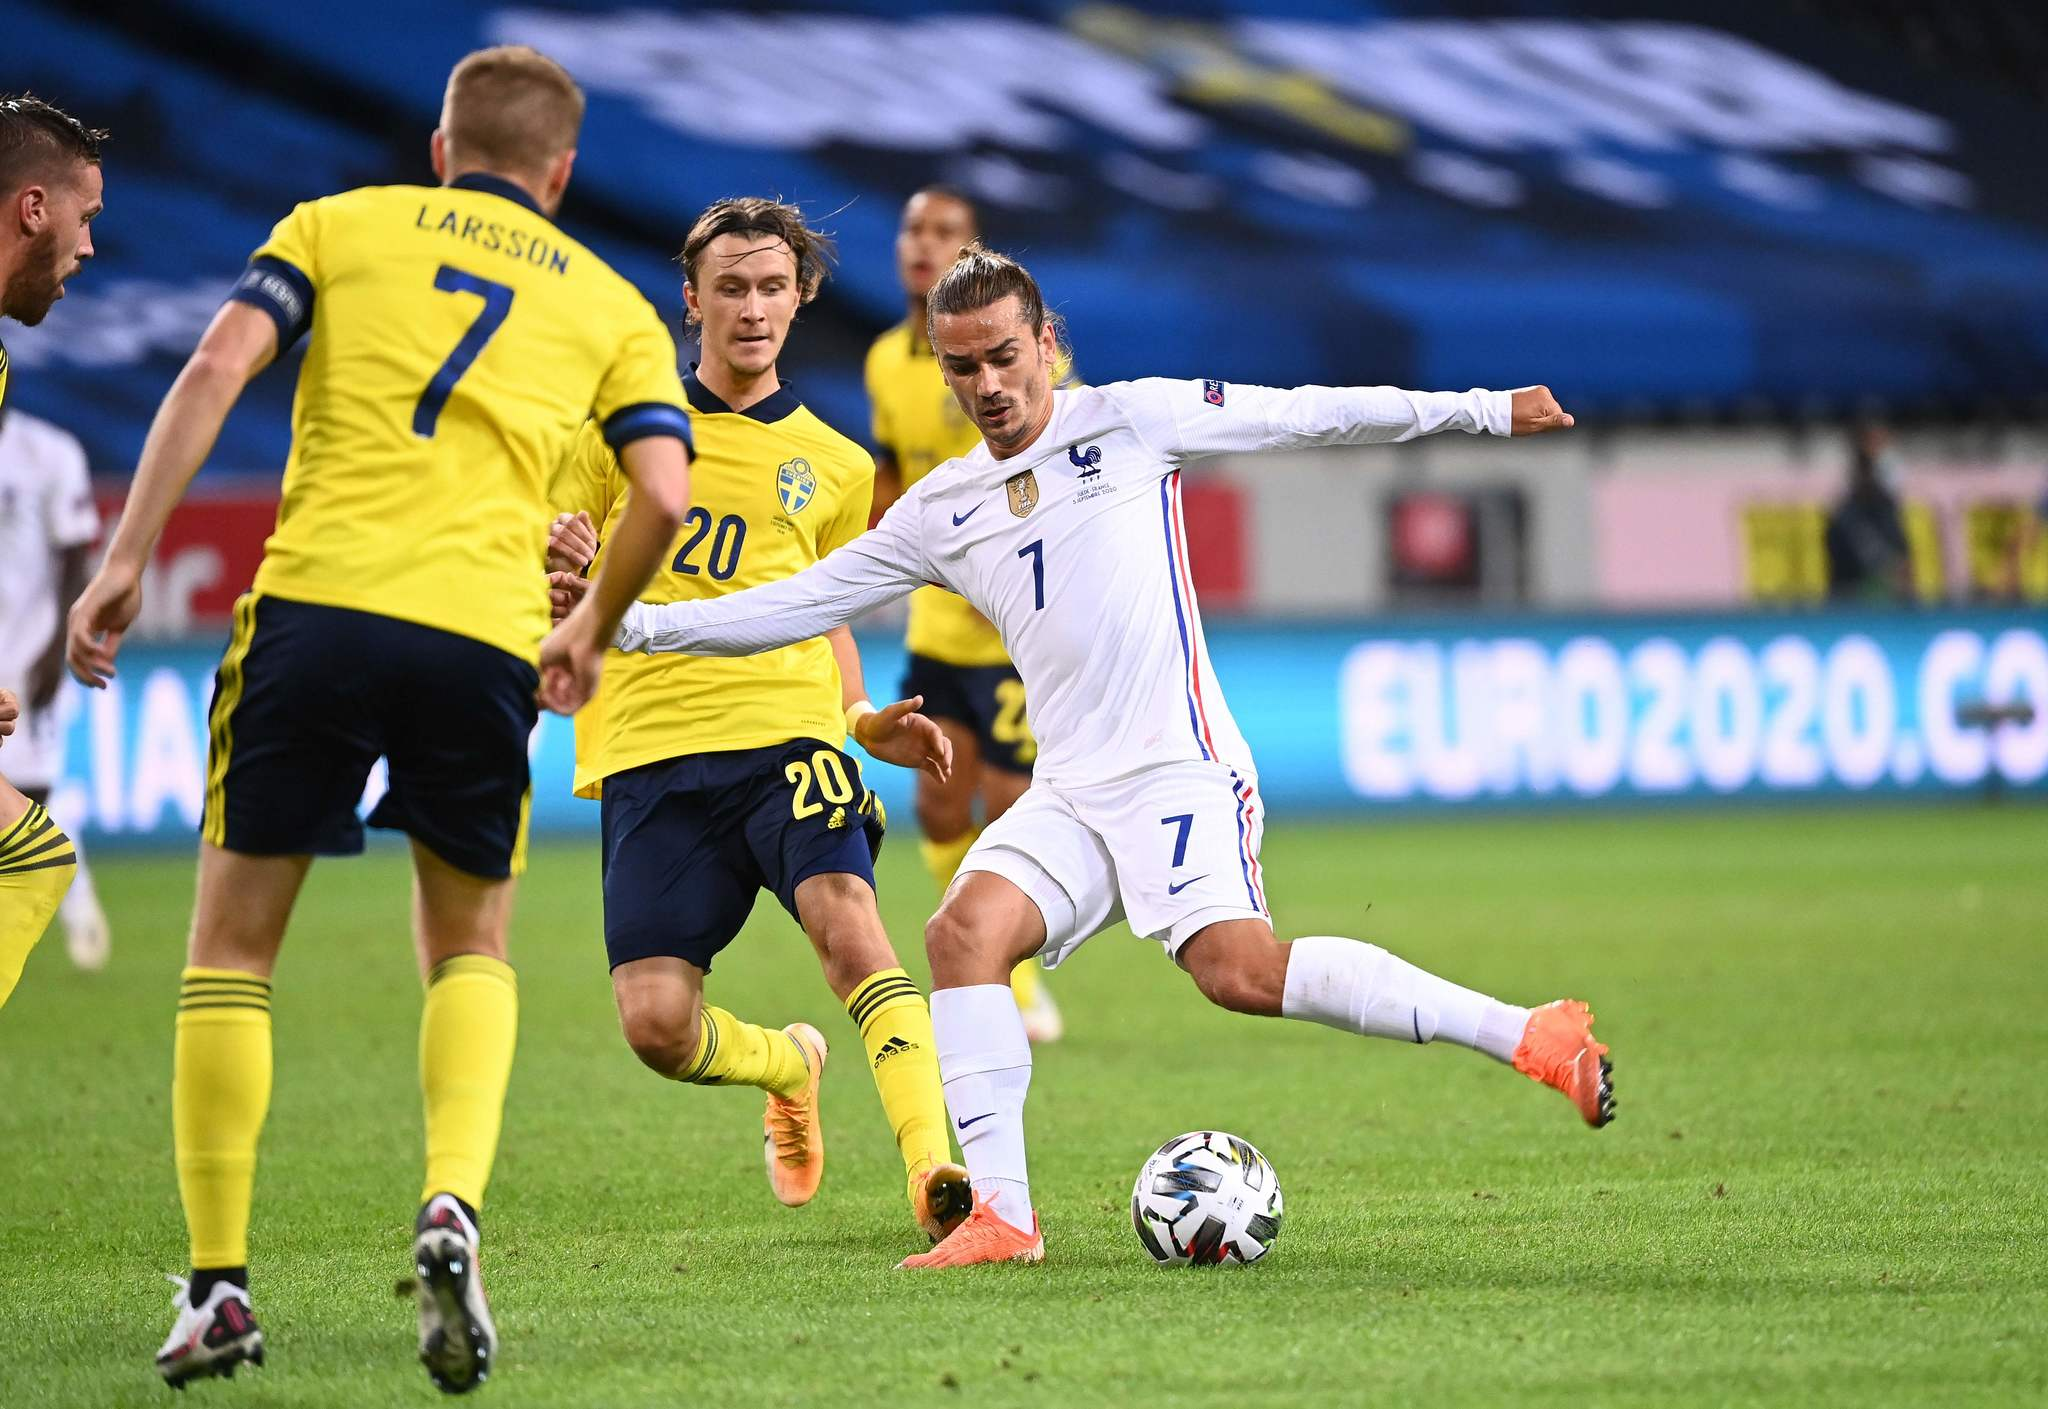 Frances forward Antoine lt;HIT gt;Griezmann lt;/HIT gt; (R) turns past Swedens midfielder Kristoffer Olsson to shoot during the UEFA Nations League football match between Sweden and France on September 5, 2020 at the Friends Arena in Solna, near Stockholm. (Photo by Jonathan NACKSTRAND / AFP)